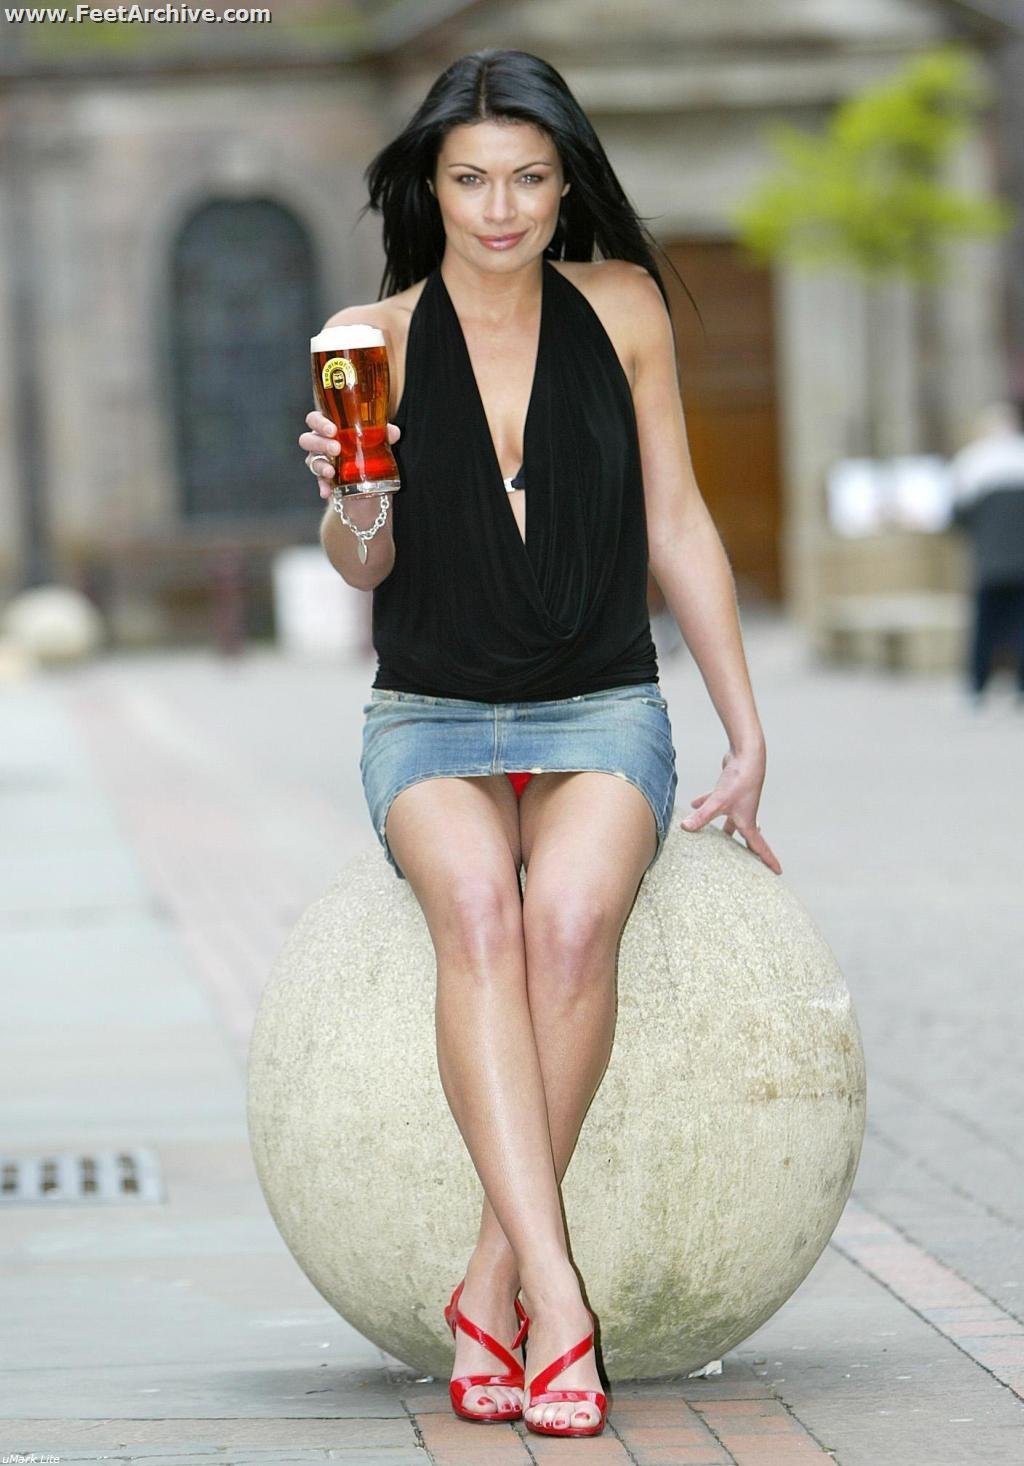 All Carla off coronation street naked pussy pica very pity